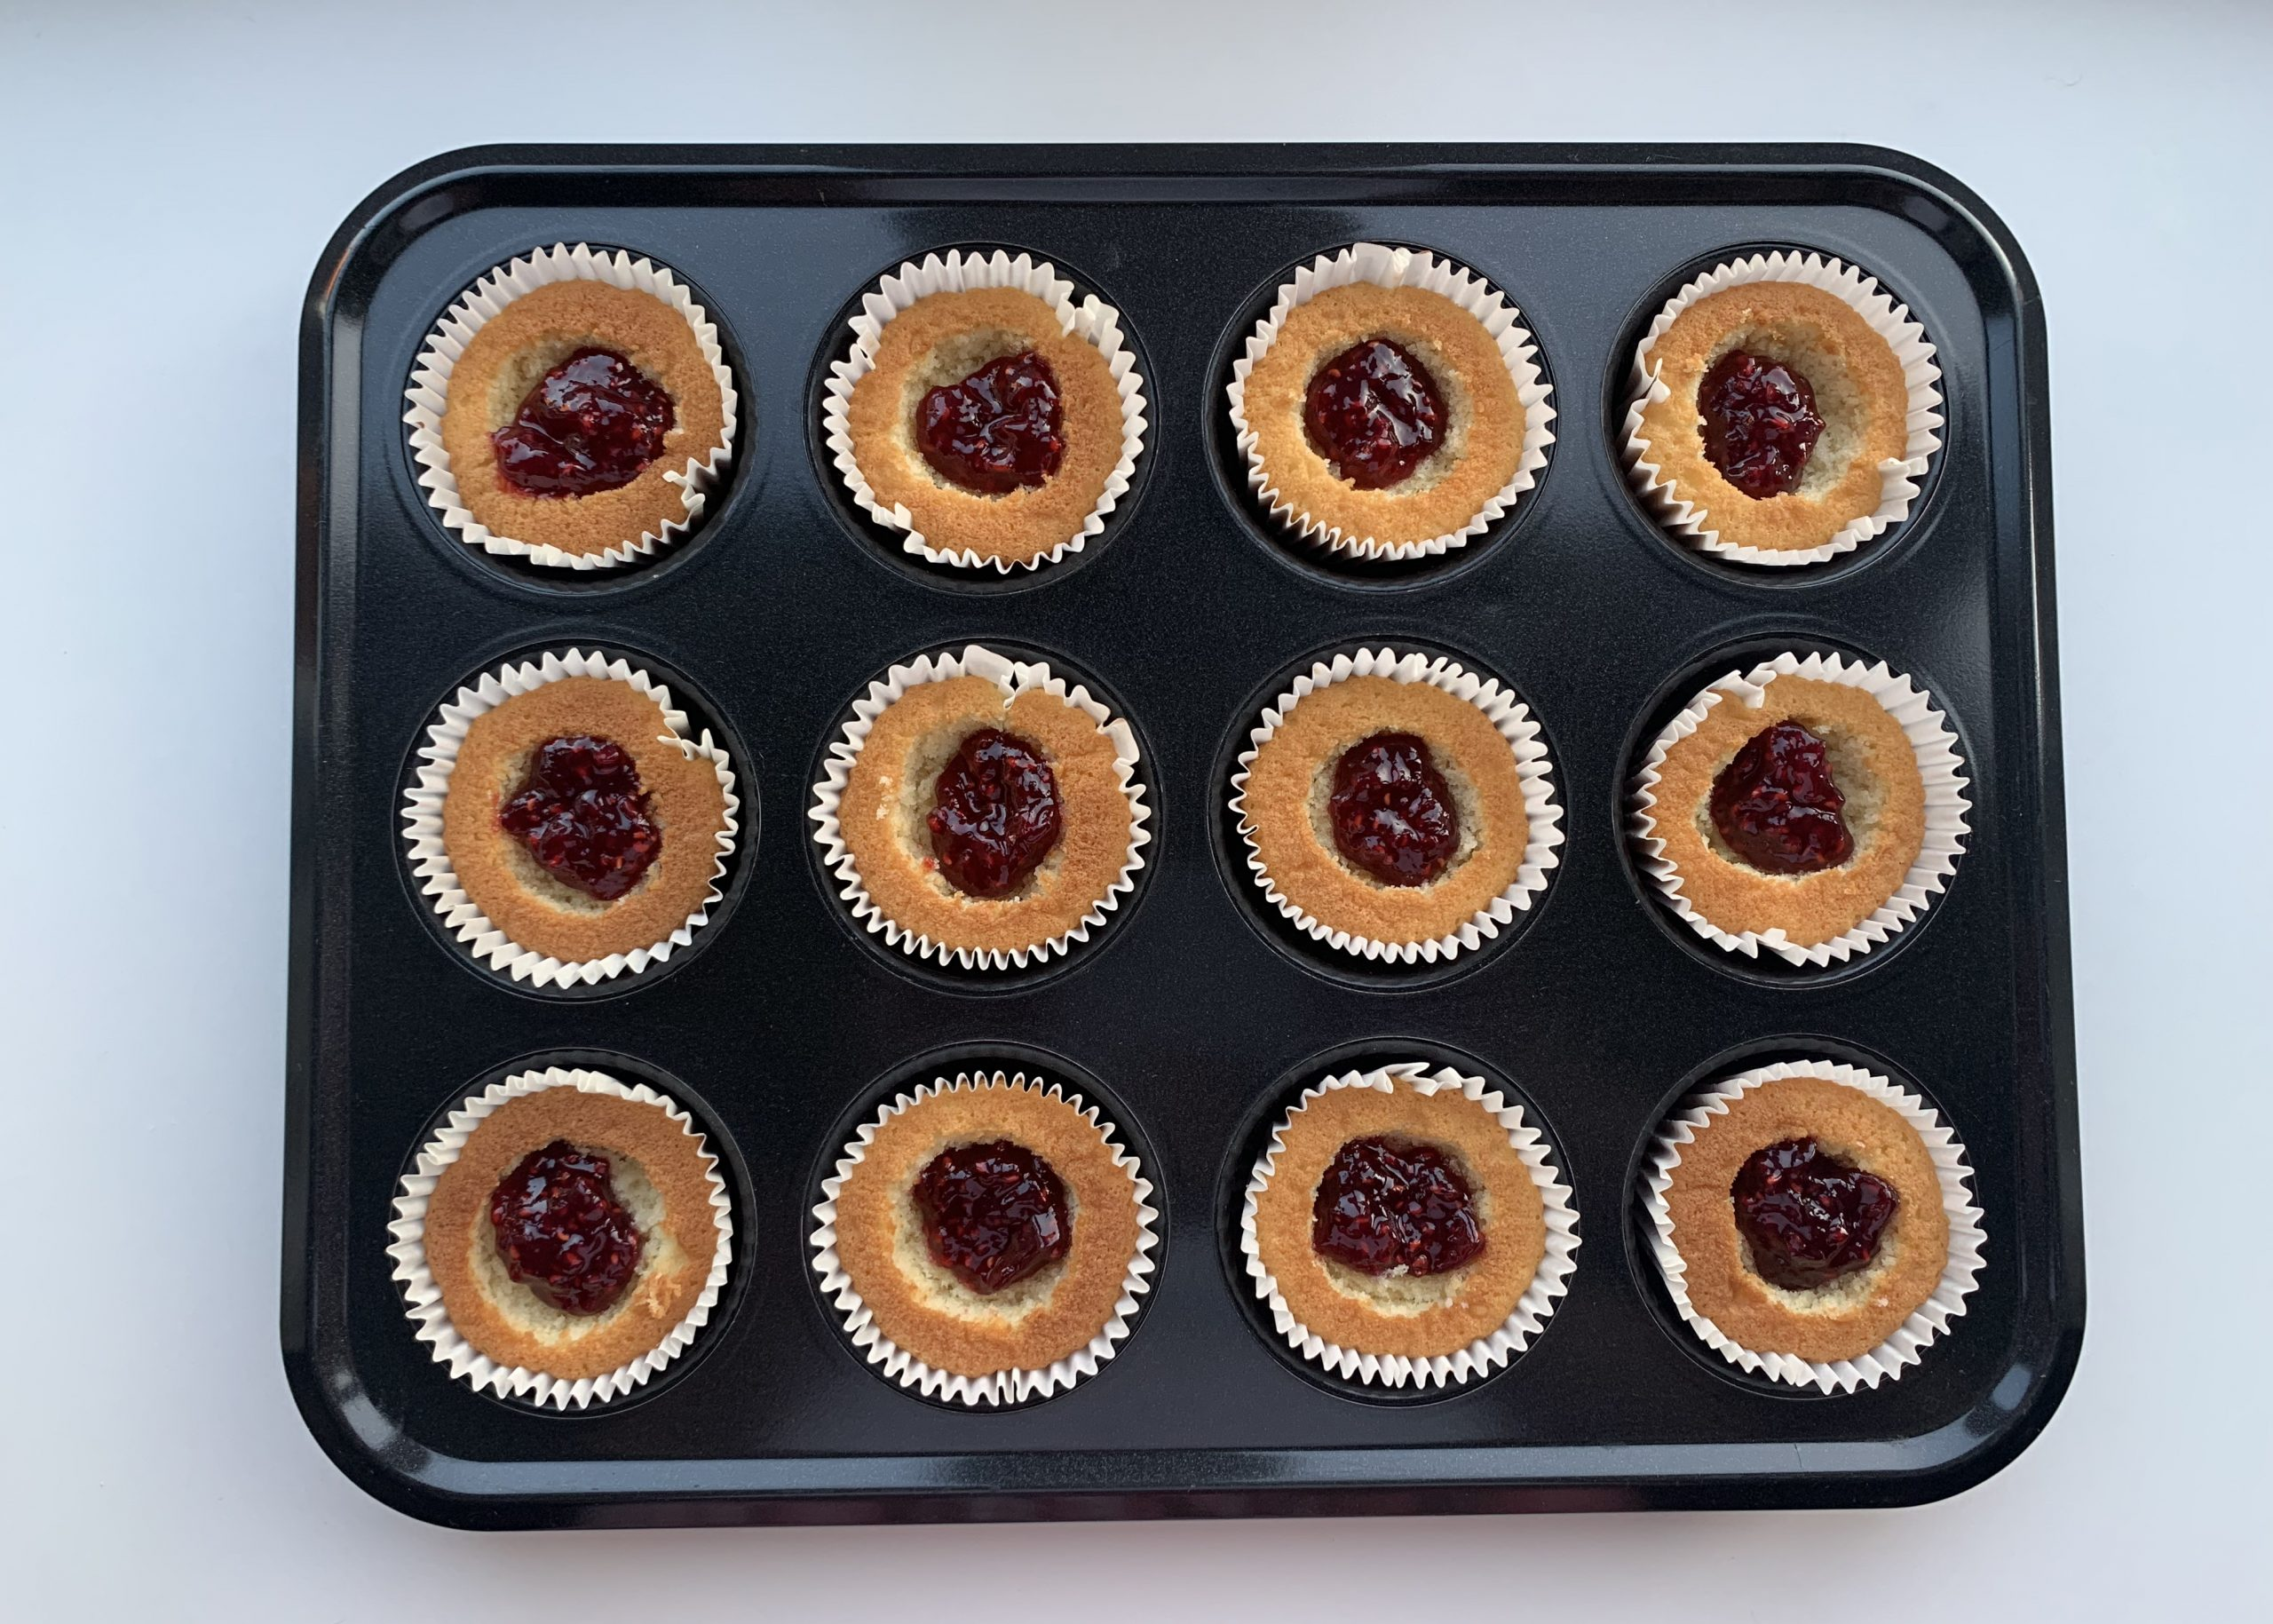 Gluten free butterfly cakes filled with jam